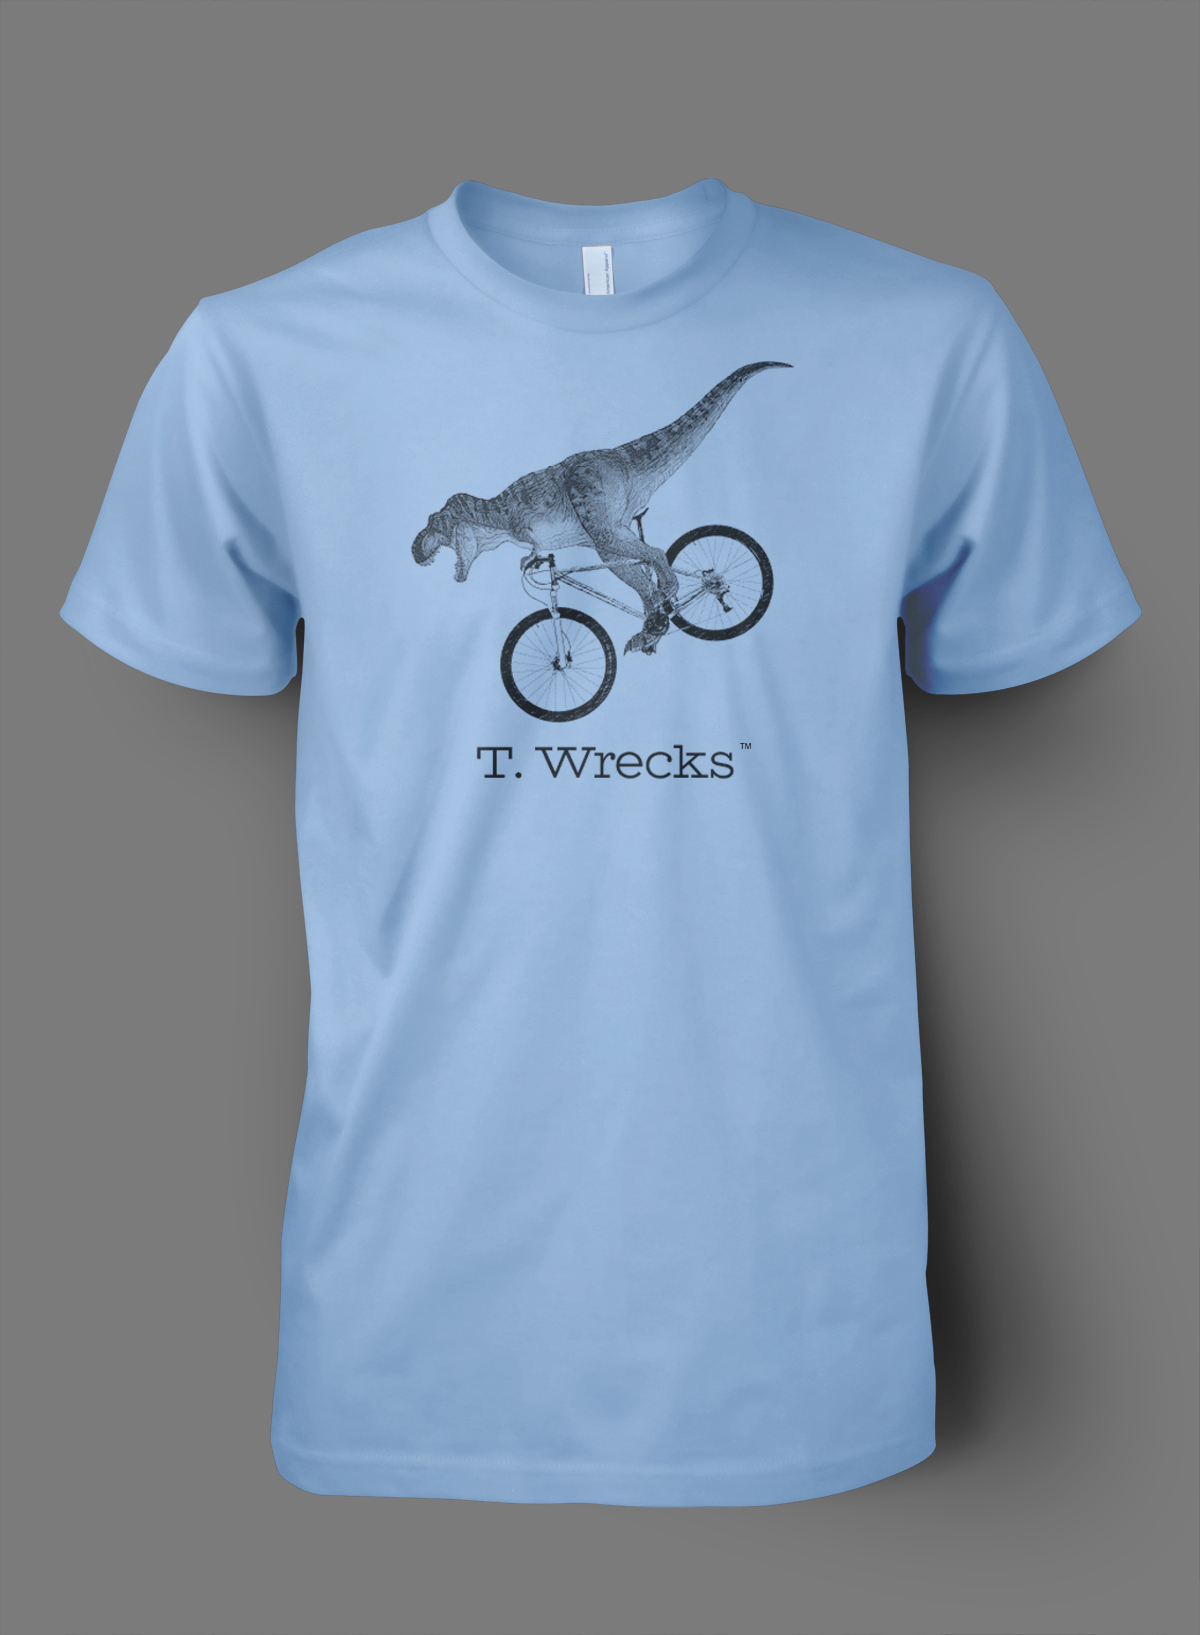 T. Wrecks Tee (Blue) 0000000